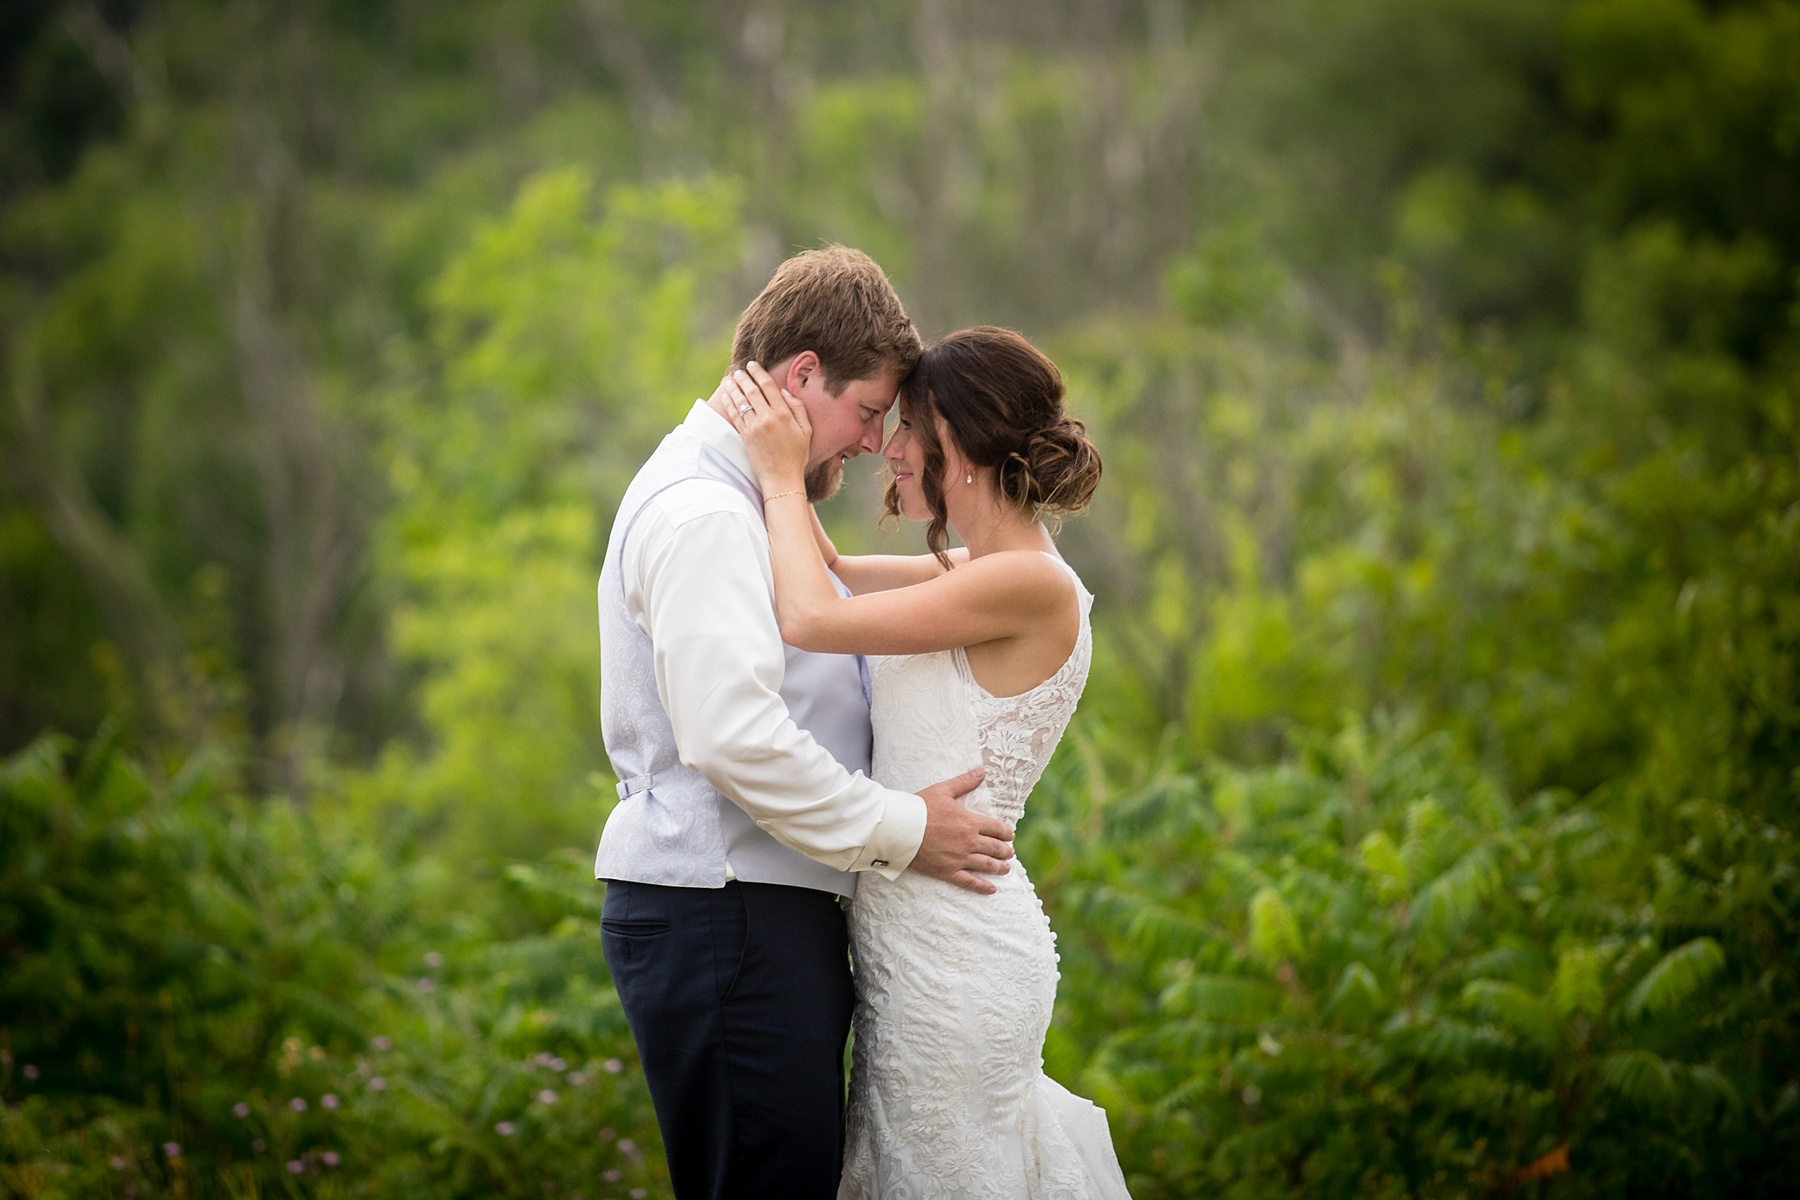 Brandon_Shafer_Photography_Elizabeth_Scott_Traverse_City_Wedding_0052.jpg